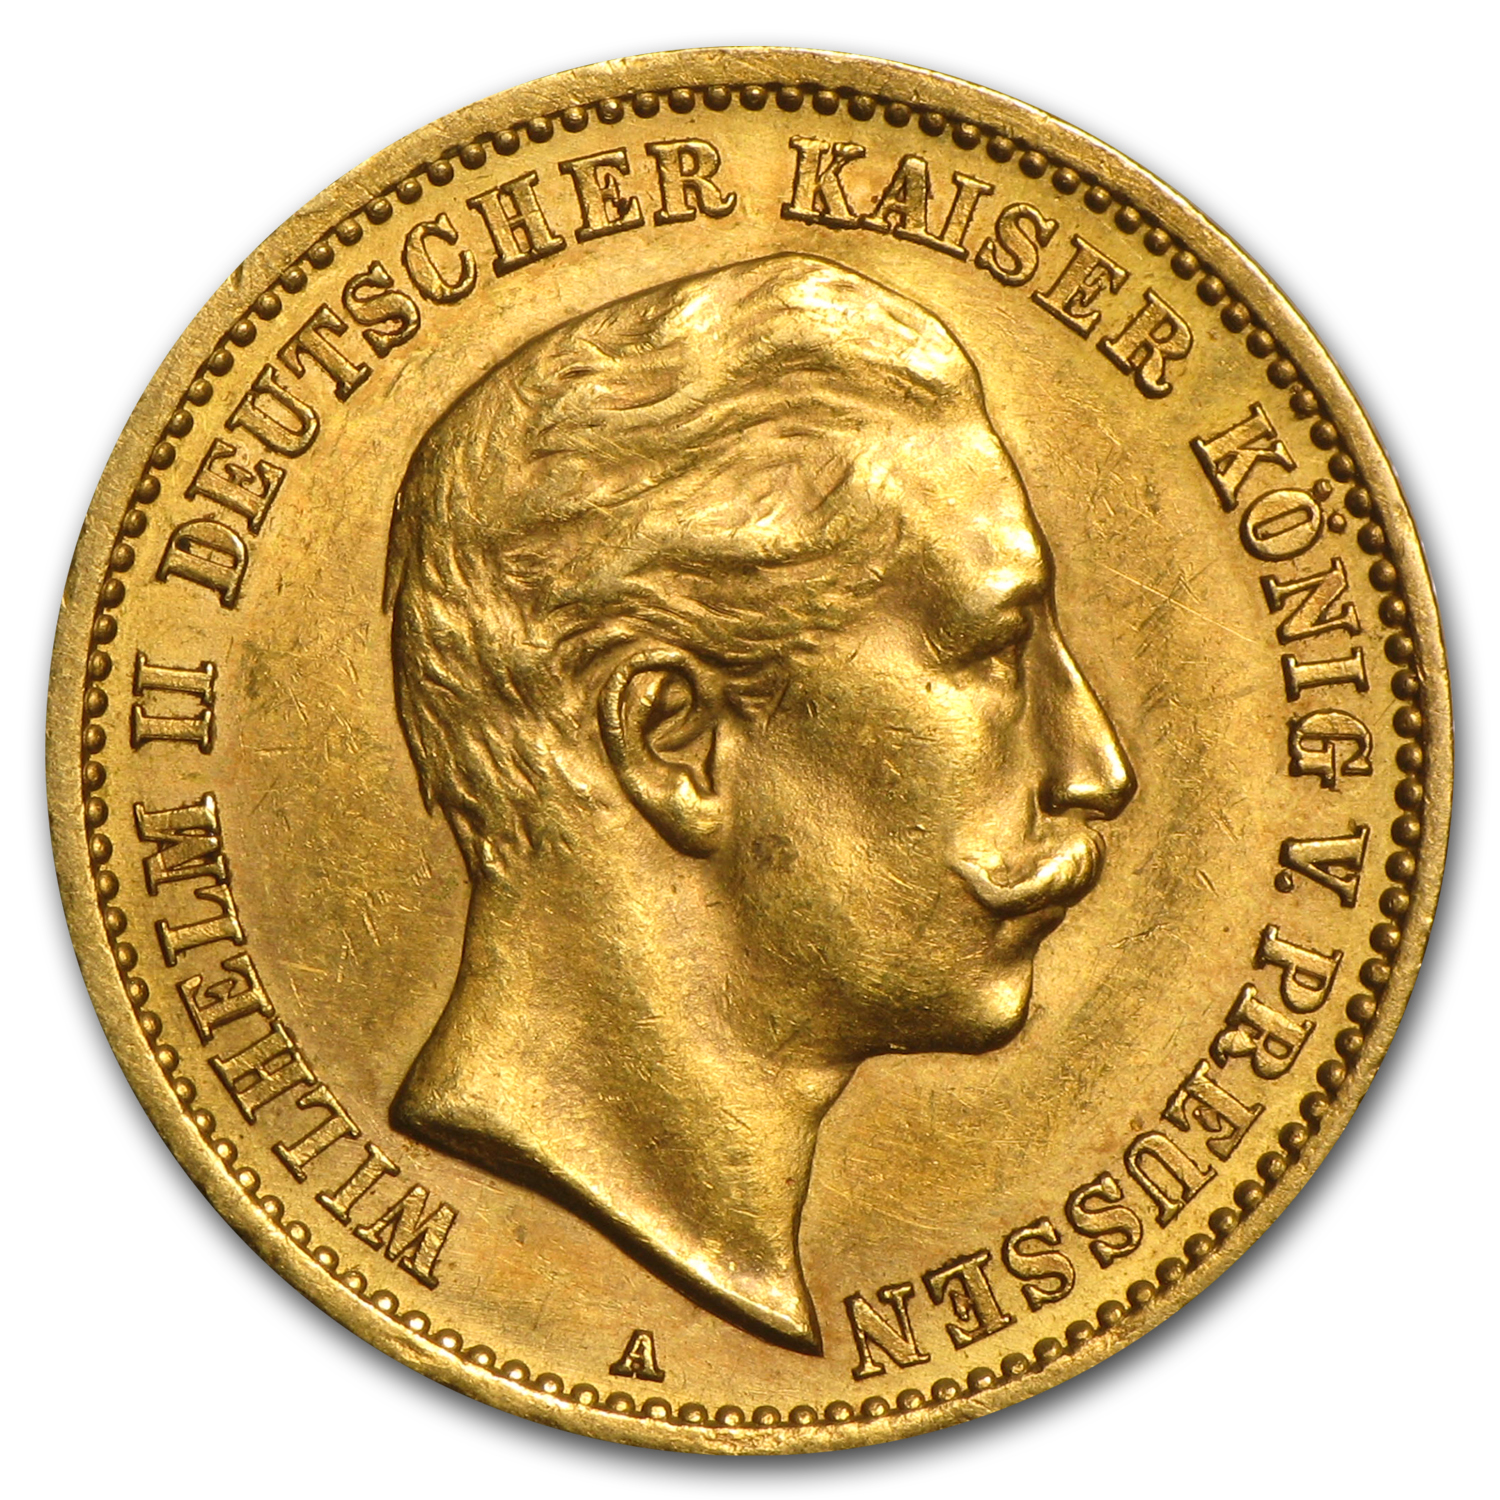 Germany Gold 10 Marks (Average Circulated)